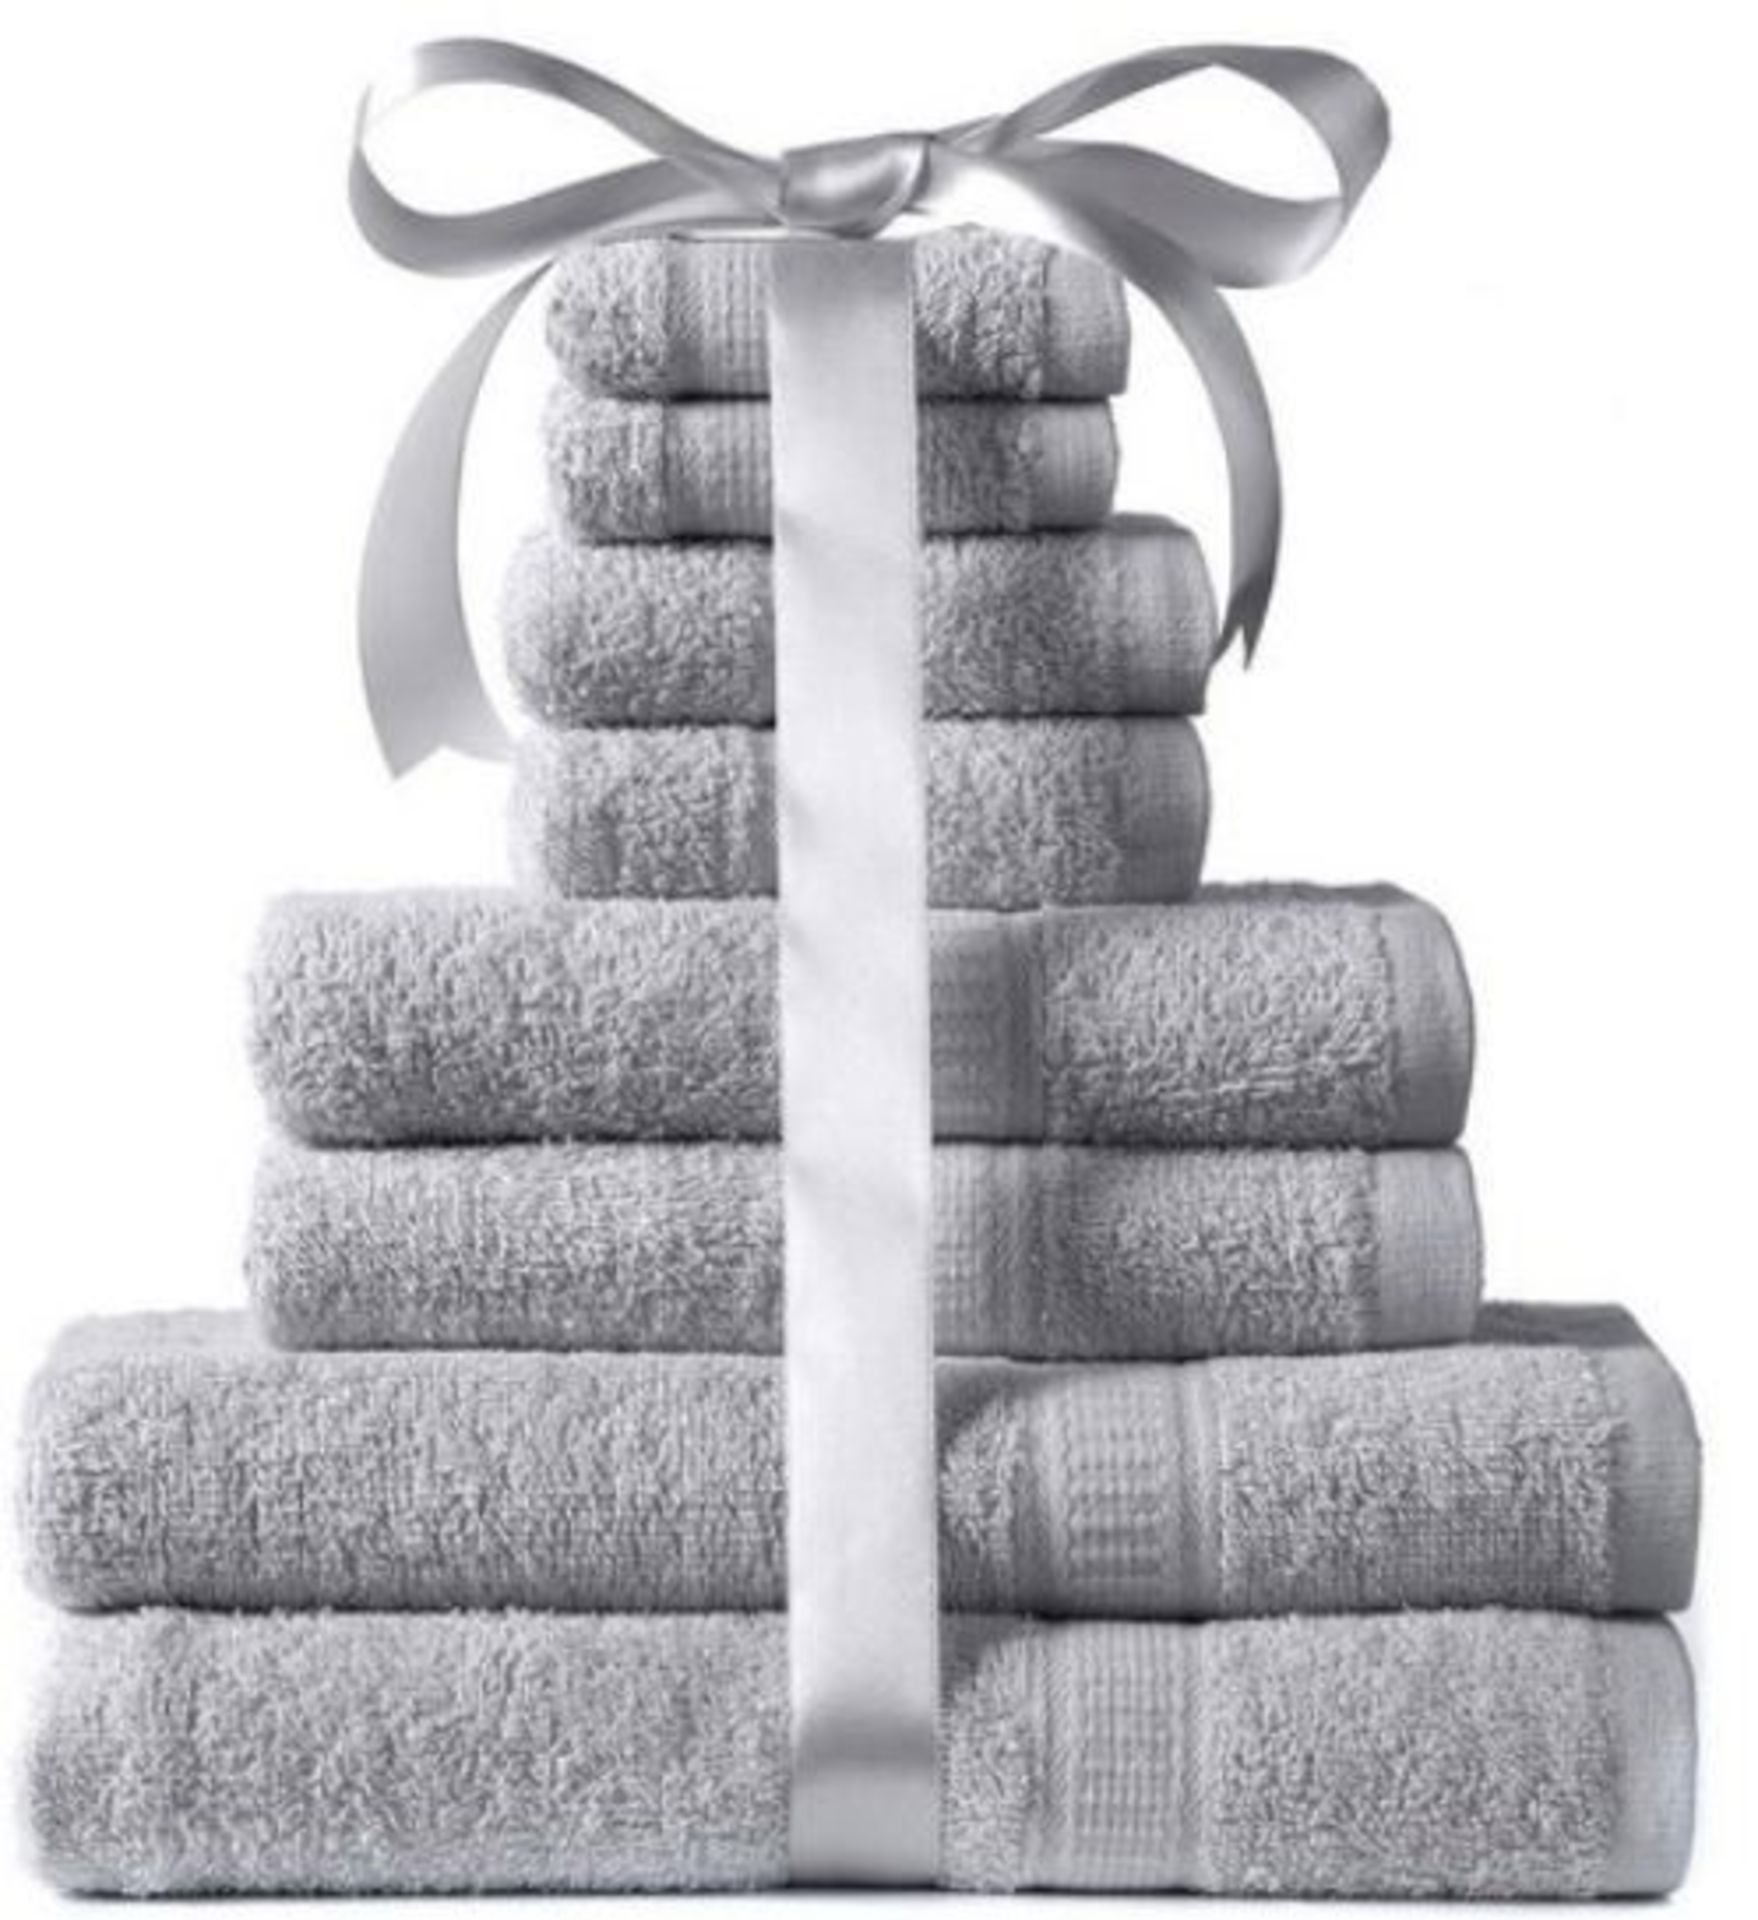 Lot 56 - 1 BAGGED 8 PIECE TOWEL BALE IN SILVER / RRP £24.99 (PUBLIC VIEWING AVAILABLE)